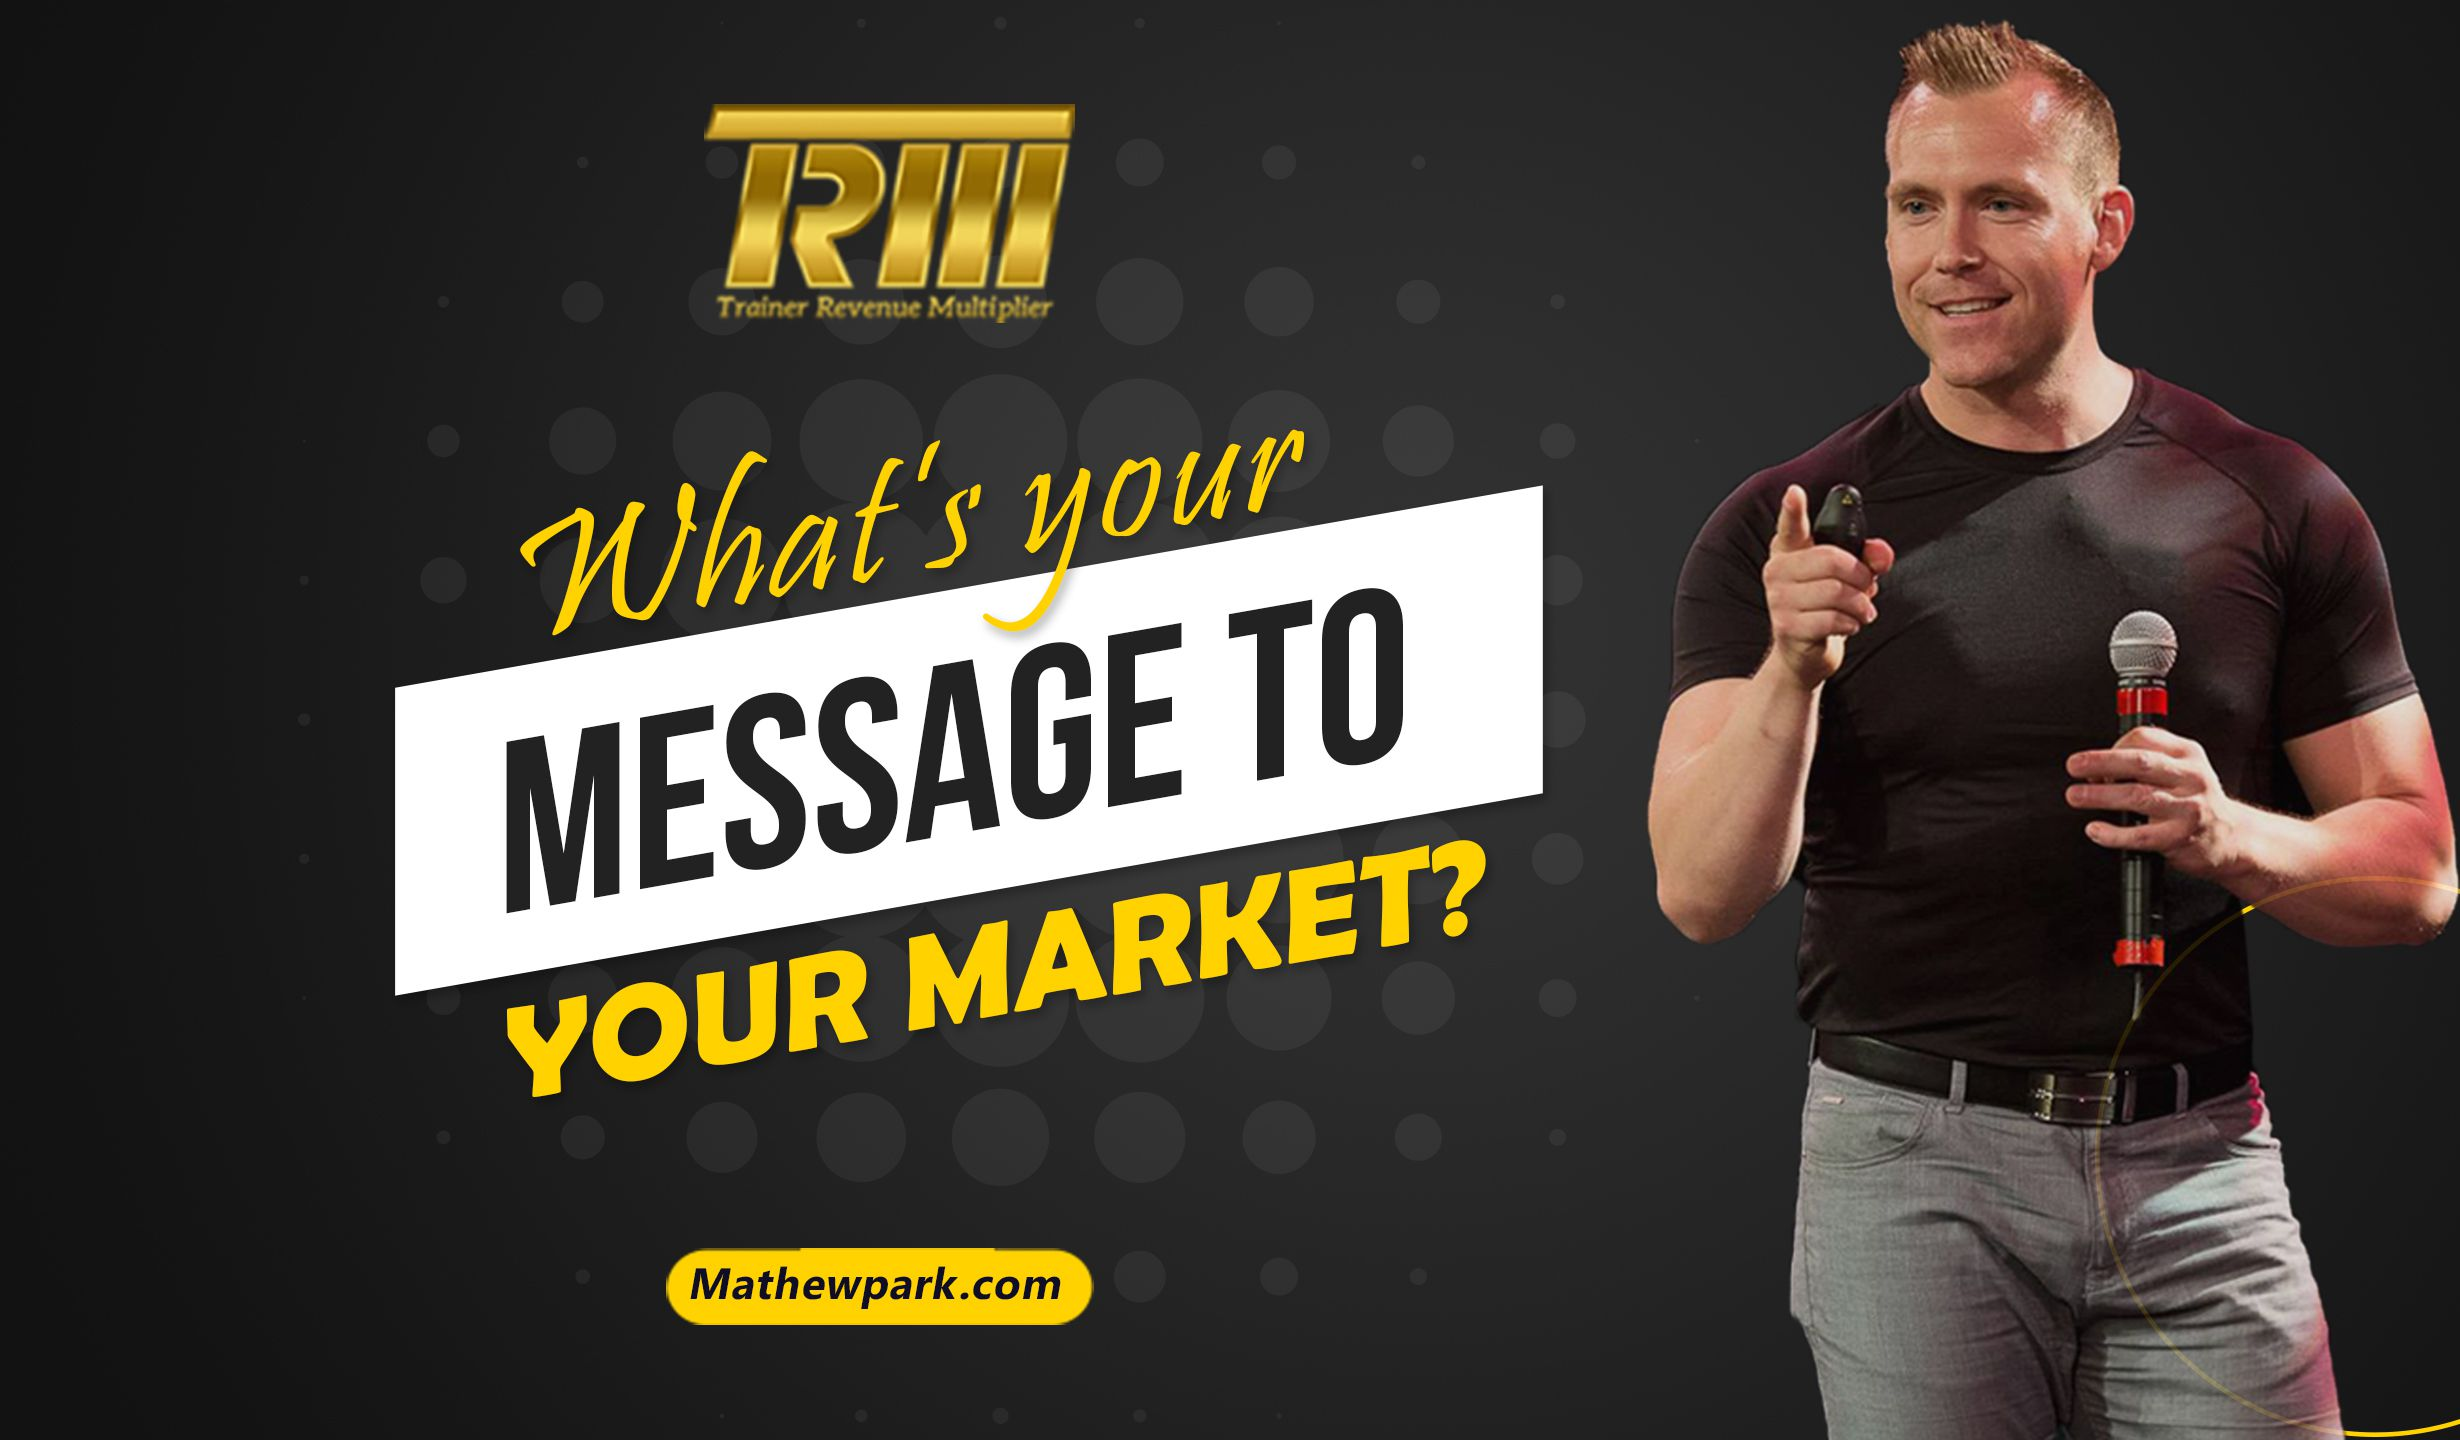 What's-your-message-to-your-market